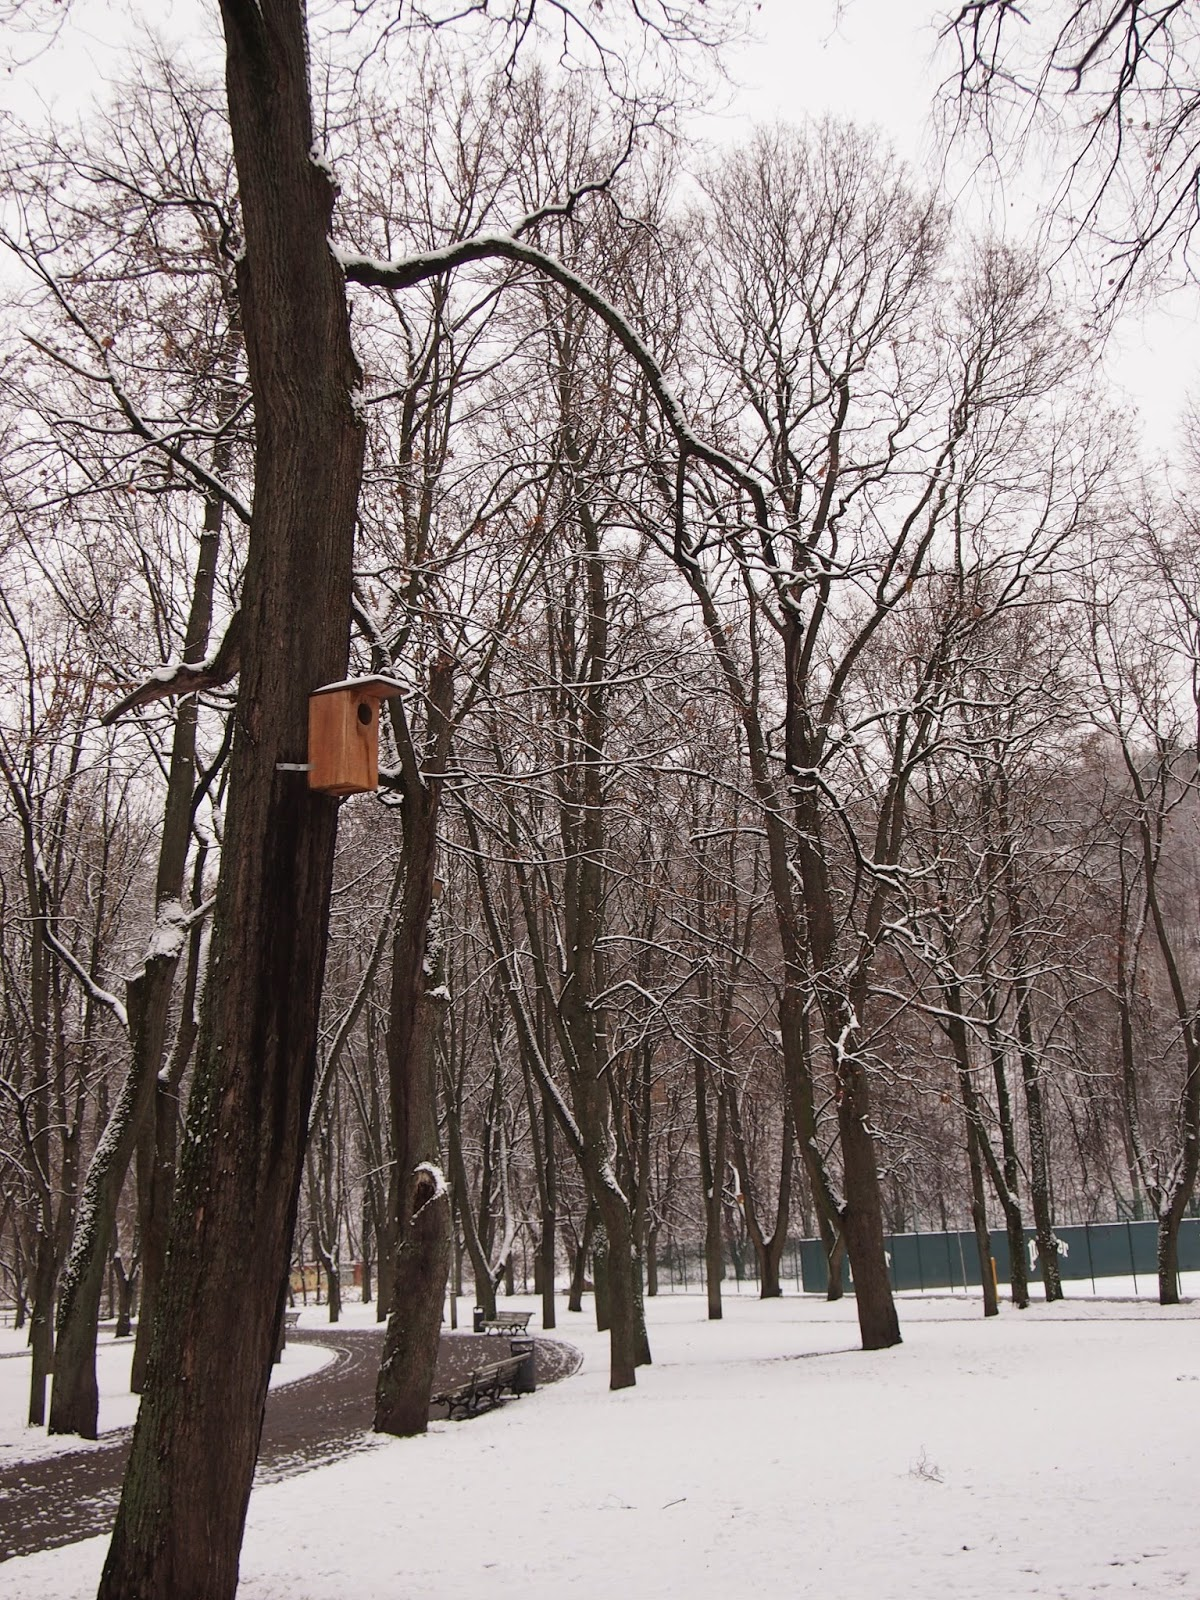 snowfall and bird houses in a park